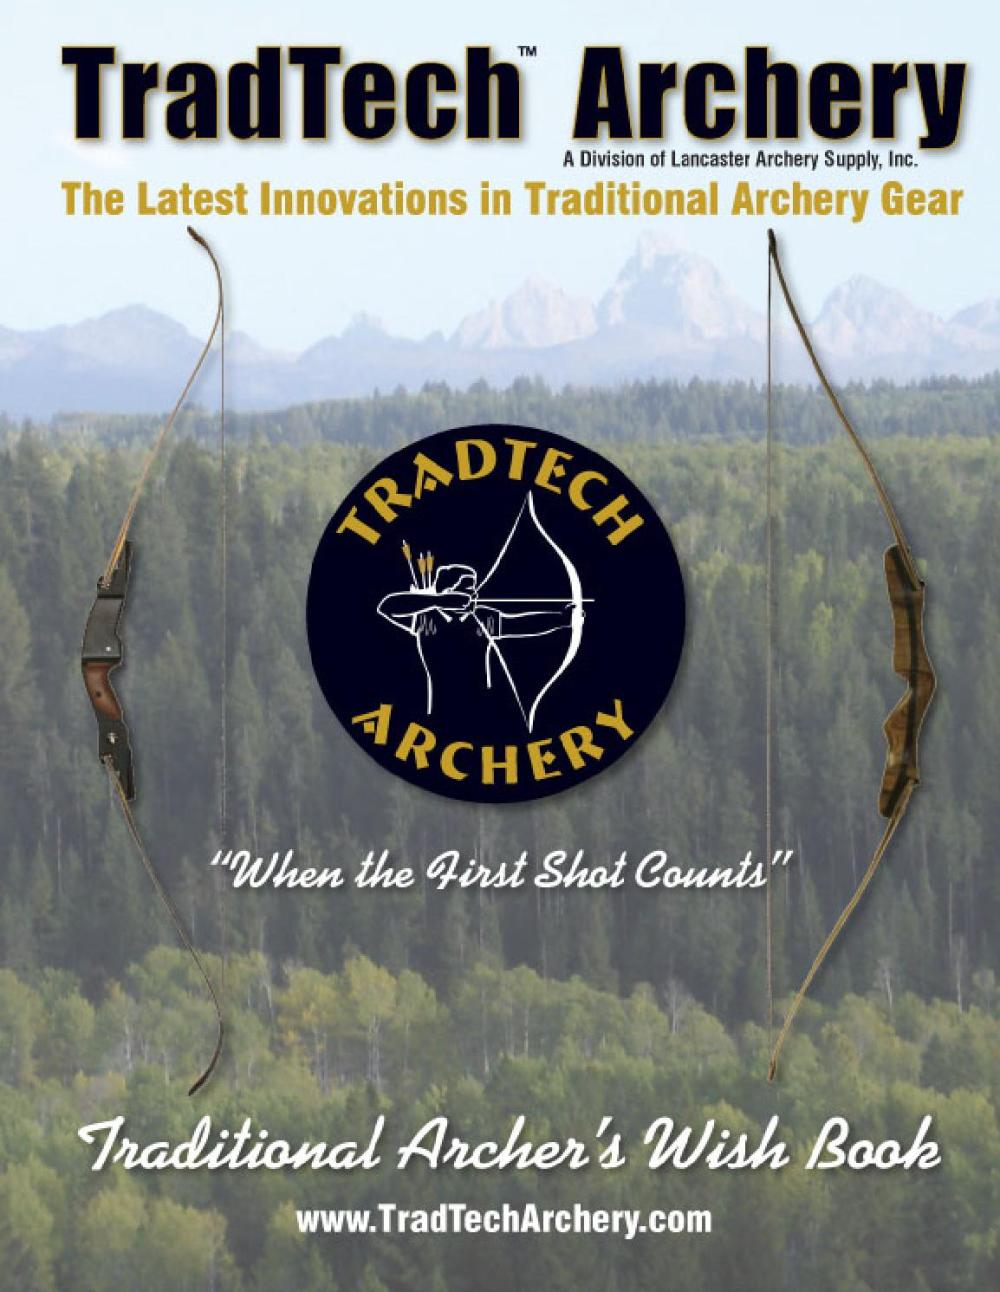 medium resolution of tradtech archery the latest innovations in traditional archery gear when the first shot counts c by davy goedertier issuu